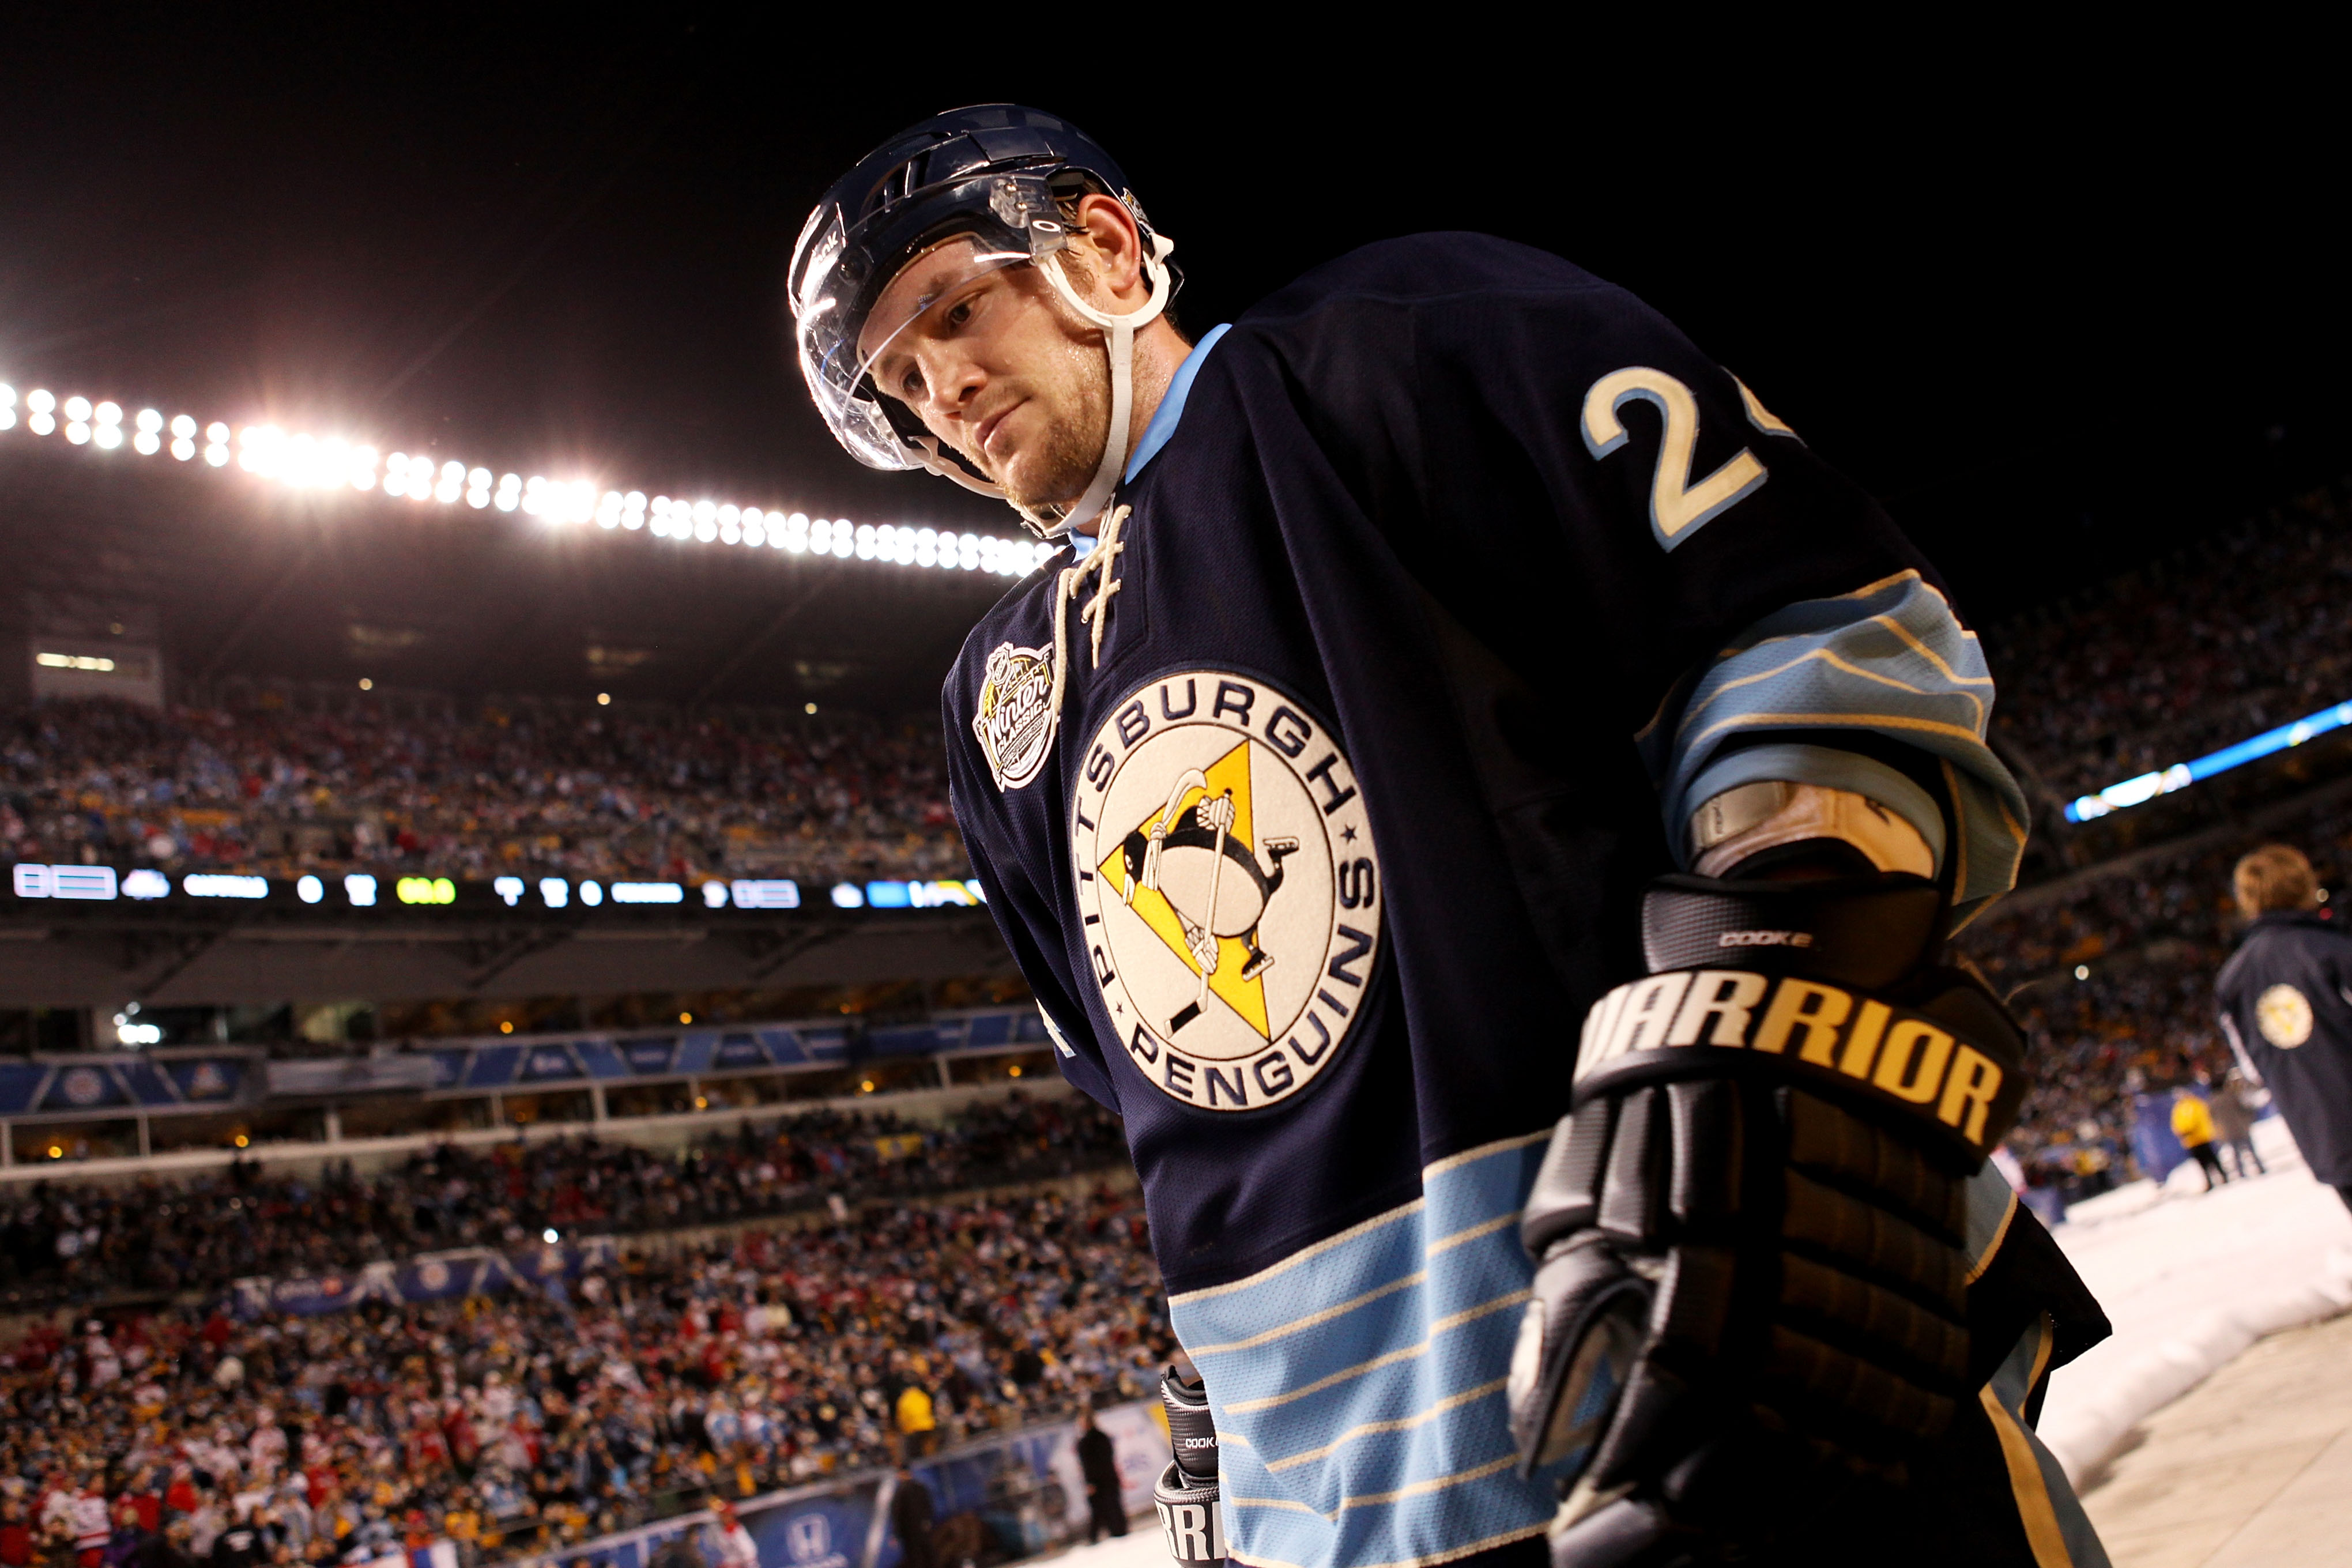 PITTSBURGH, PA - JANUARY 01:  Matt Cooke #24 of the Pittsburgh Penguins walks to the ice before playing against the Washington Capitals during the 2011 NHL Bridgestone Winter Classic at Heinz Field on January 1, 2011 in Pittsburgh, Pennsylvania. Washingto